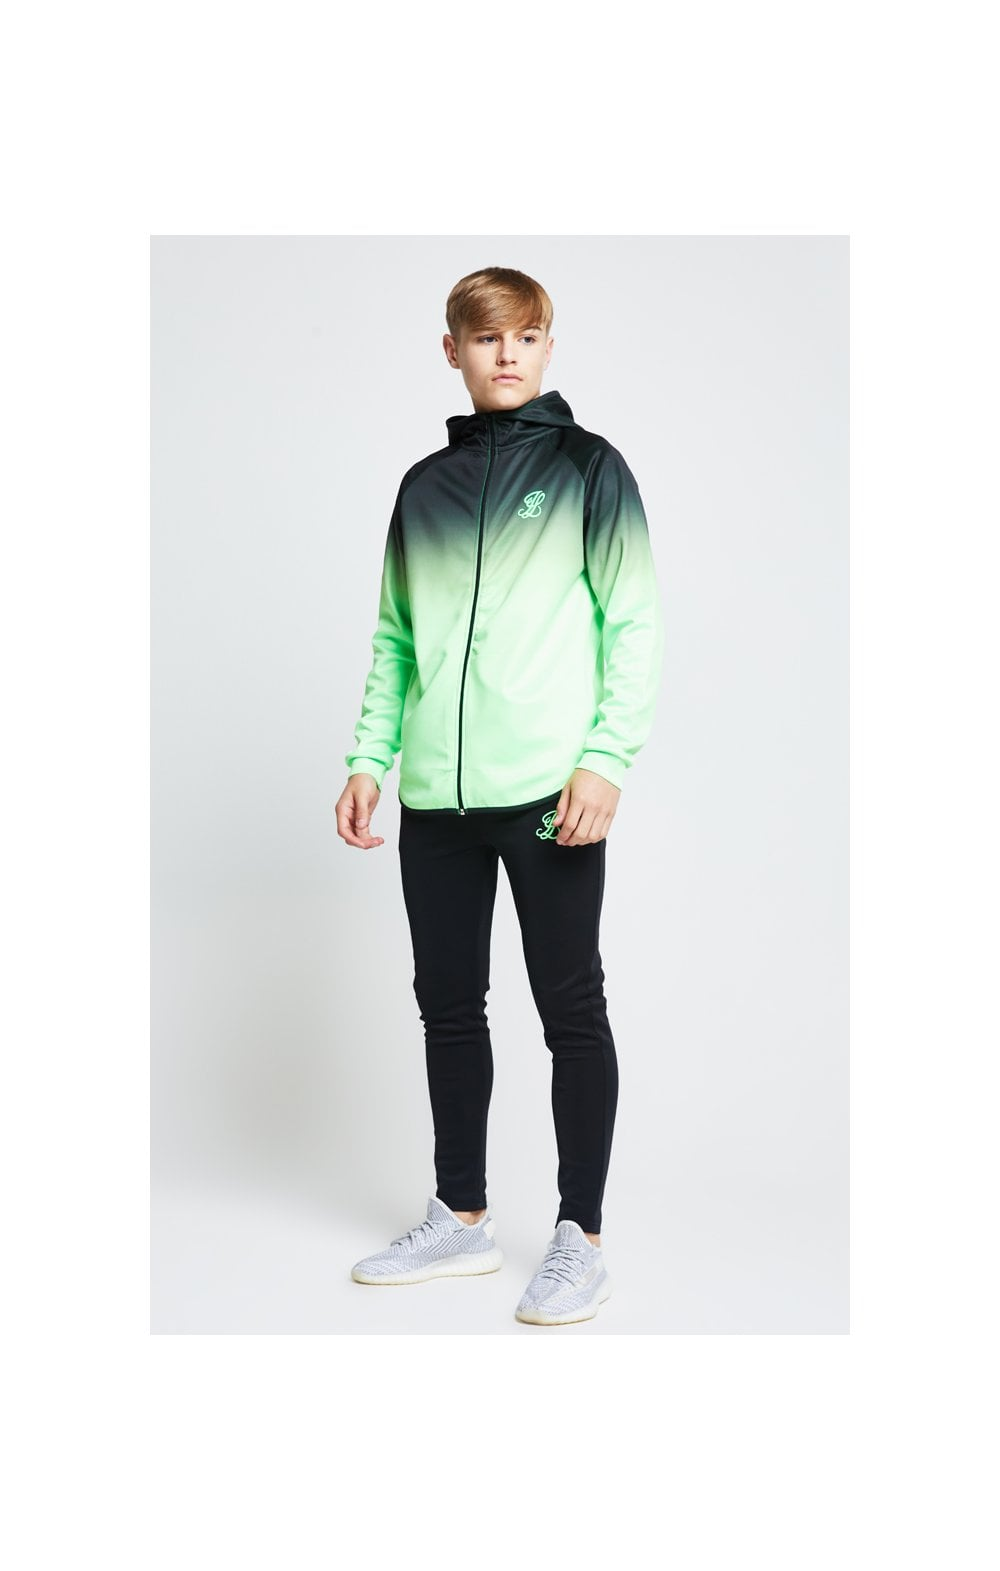 Load image into Gallery viewer, Illusive London Athlete Zip Through Hoodie - Black & Neon Green (2)